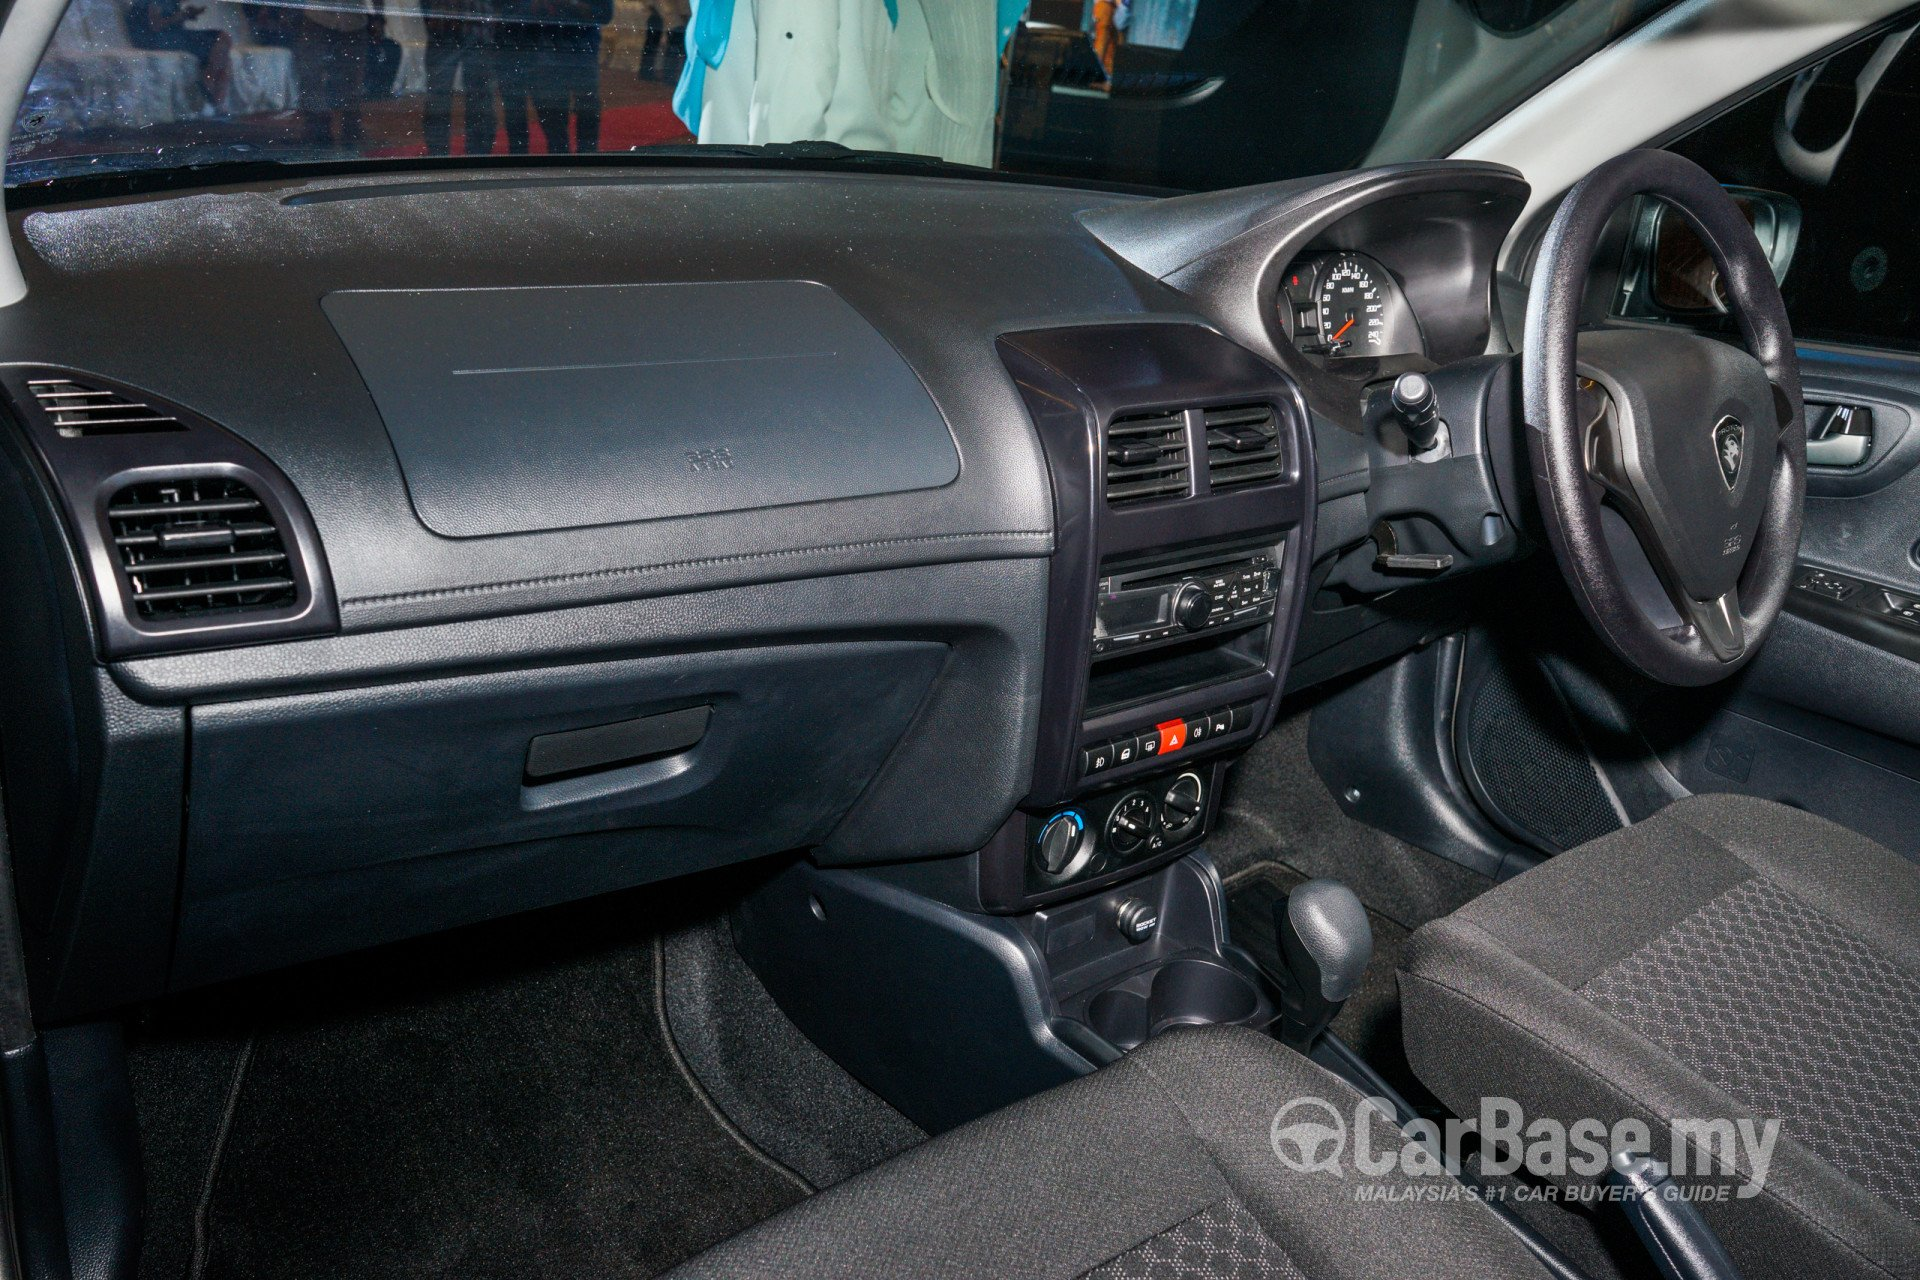 https://s1.carbase.my/upload/51/64/459/interior/s13-1475115821-6130-proton-saga.jpg